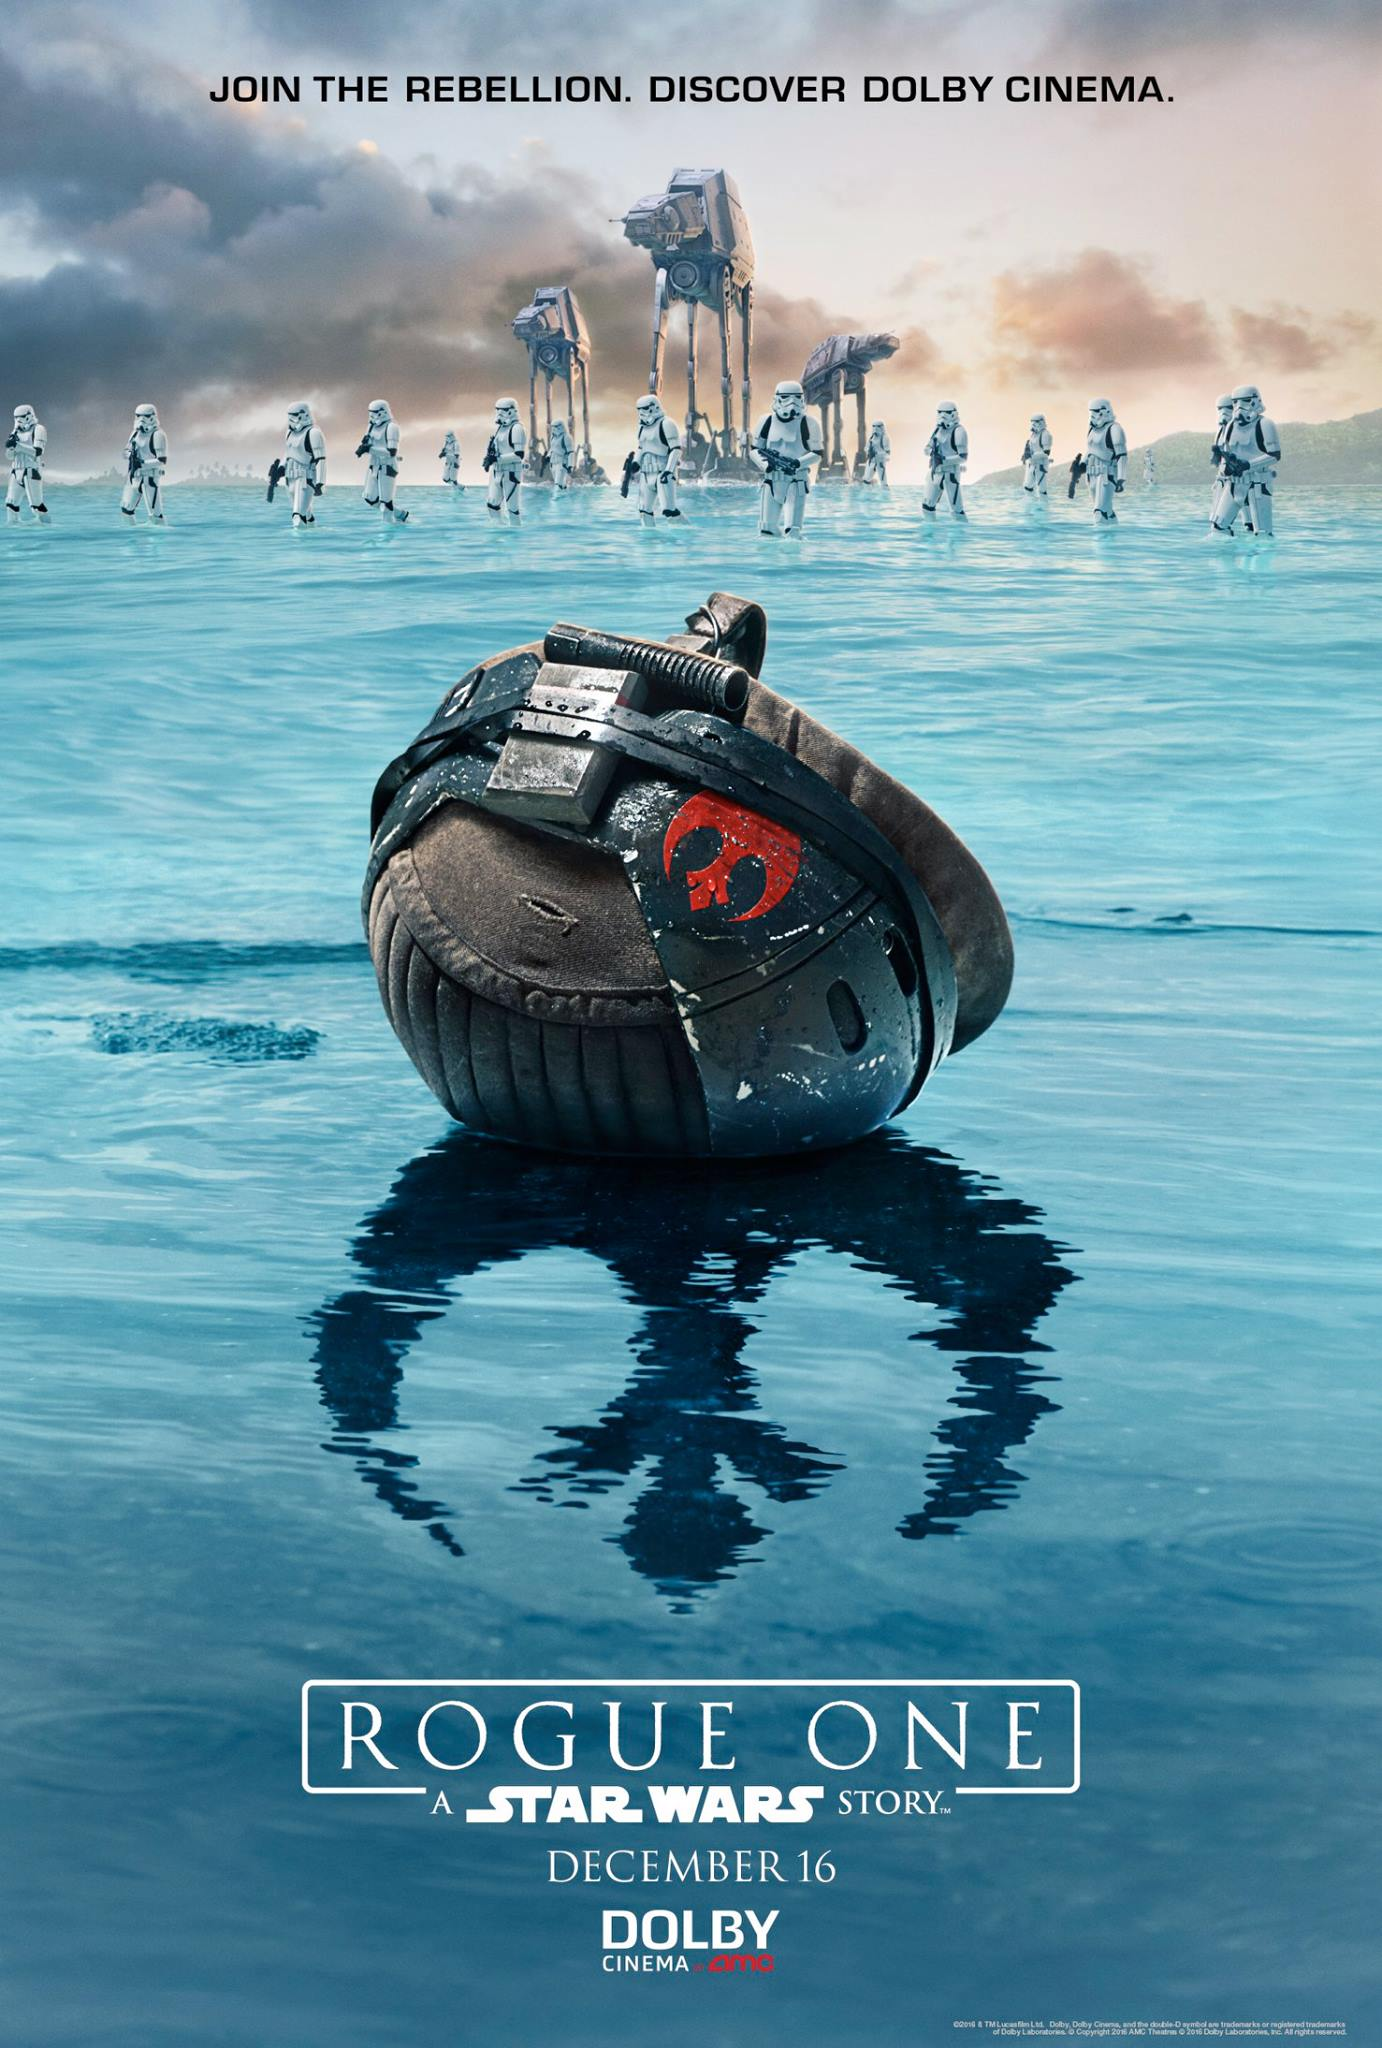 rogue-one-star-wars-story-dolby-cinema-poster